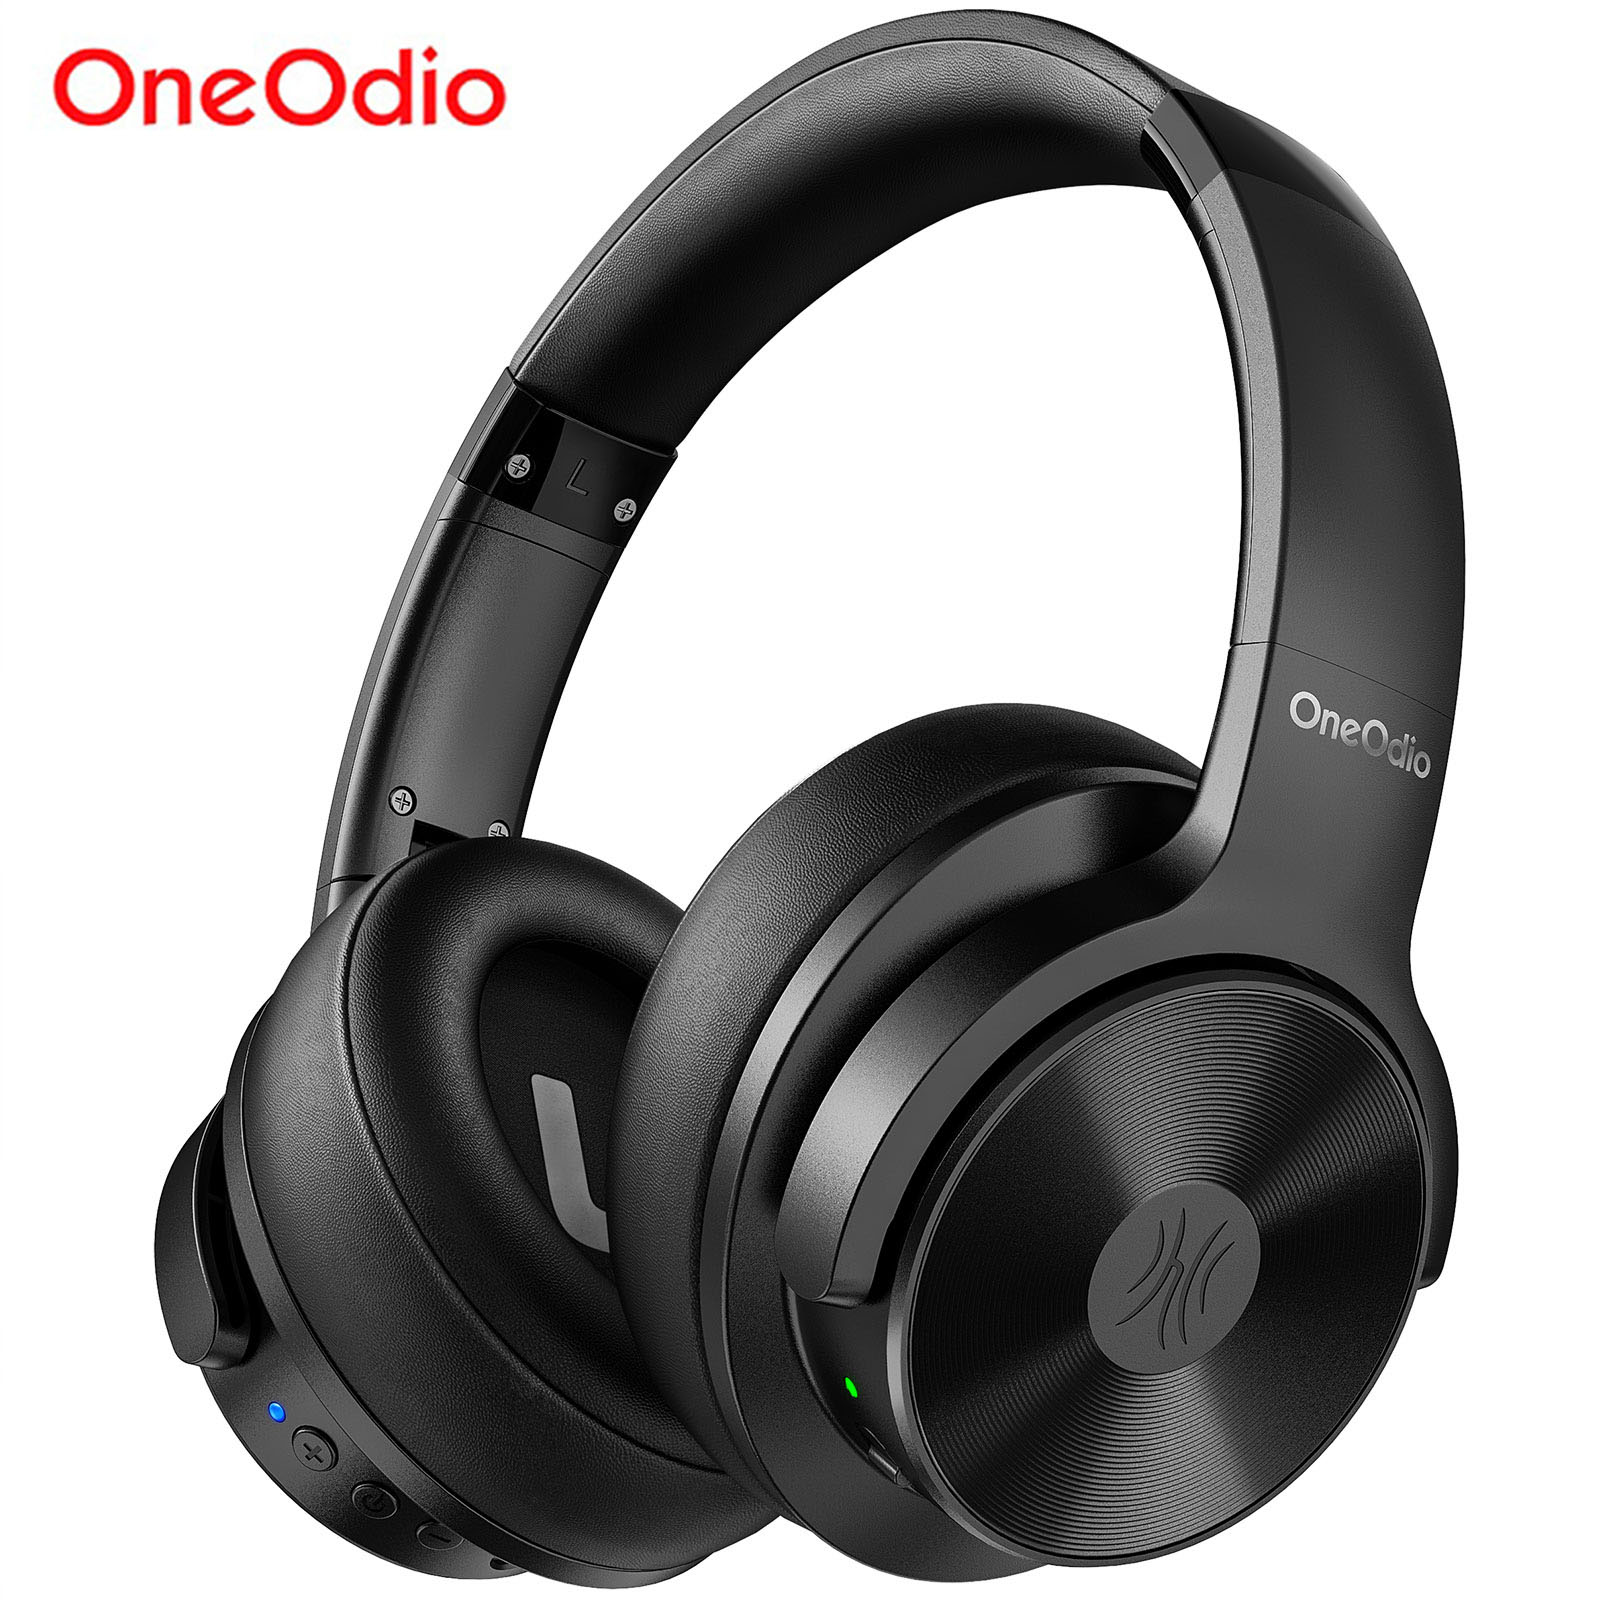 Oneodio A30 Active Noise Cancelling Headphones Wireless Over Ear Bluetooth 5.0 Headset With Deep Bass CVC 8.0 Clear Mic Travel